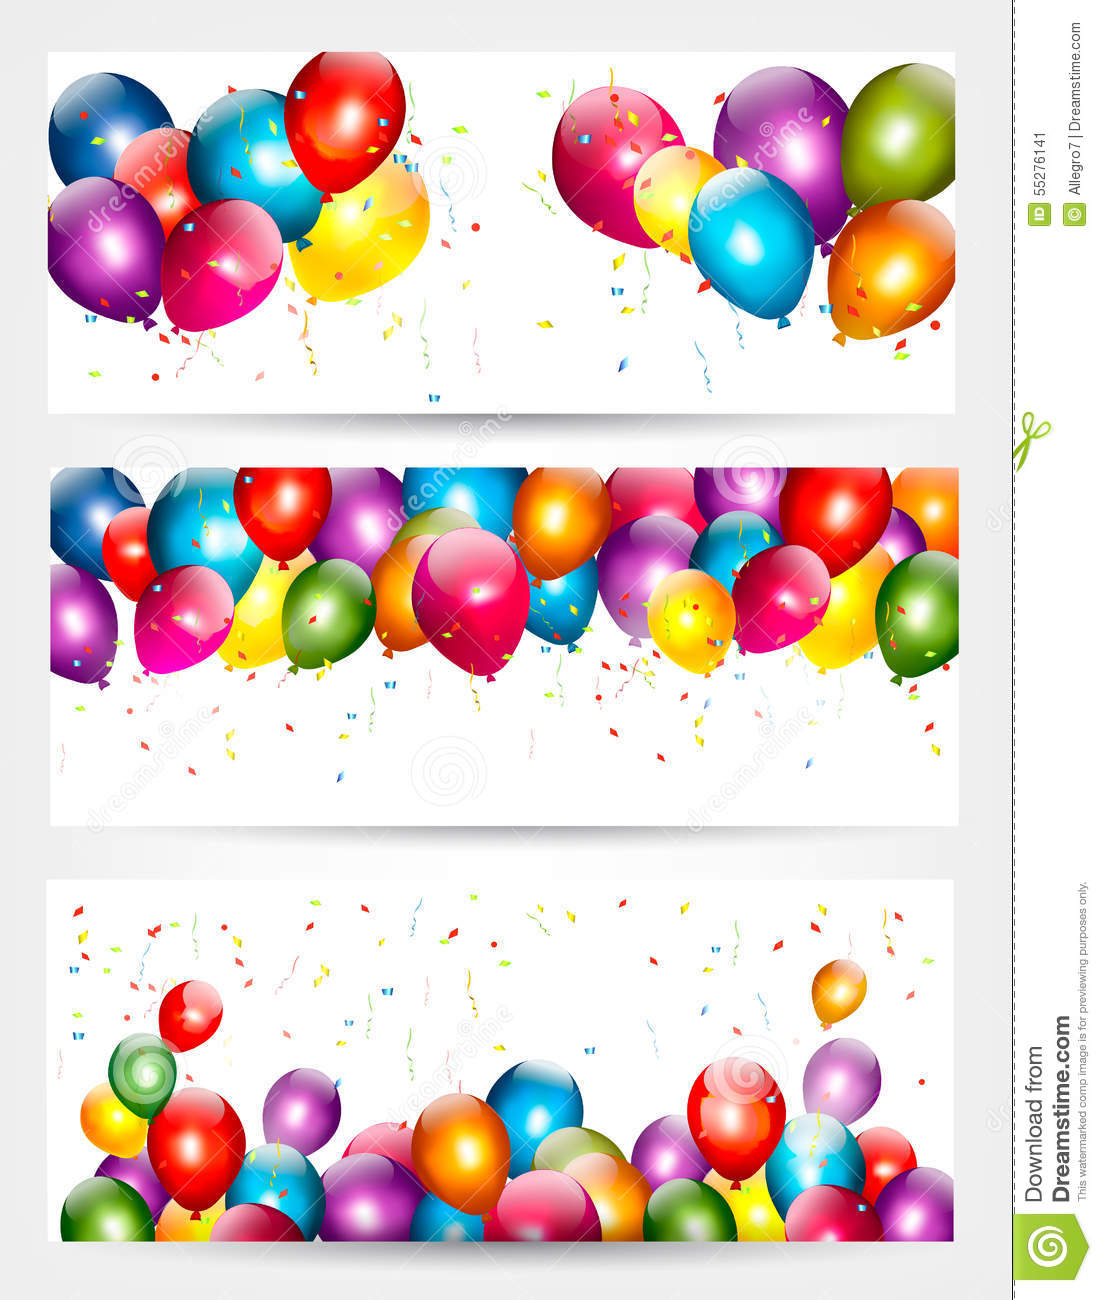 Three Holiday Birthday Banners With Balloons. Stock Vector